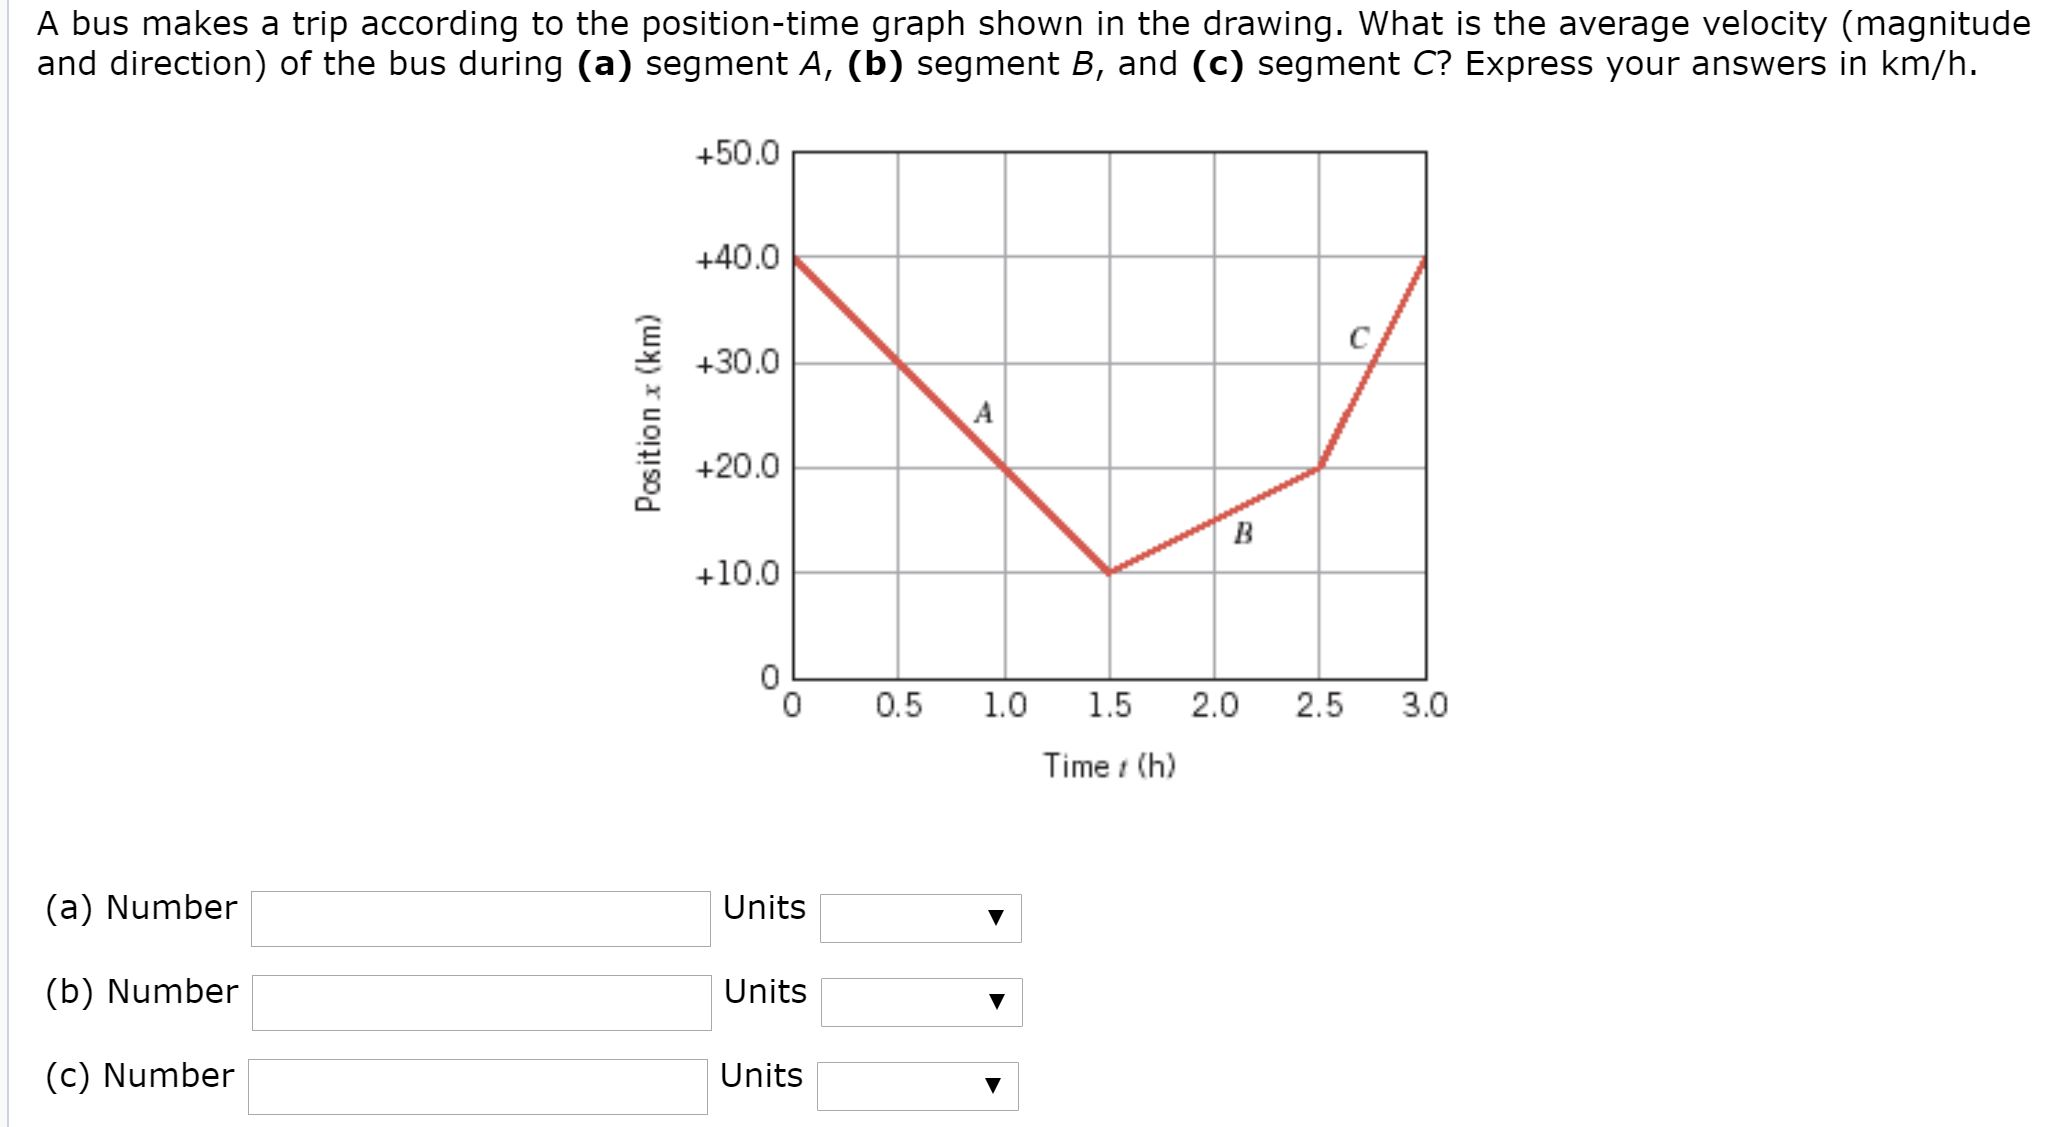 A bus makes a trip according to the position-time graph shown in the drawing. What is the average velocity (magnitude and direction) of the bus during (a) segment A, (b) segment B, and (c) segment C? Express your answers in km/h. +50.0 +40.0 +30.0 +20.0 +10.0 0.5 1.0 1.5 2.5 3.0 2.0 Time i (h) (a) Number Units (b) Number Units (c) Number Units Position x (km)